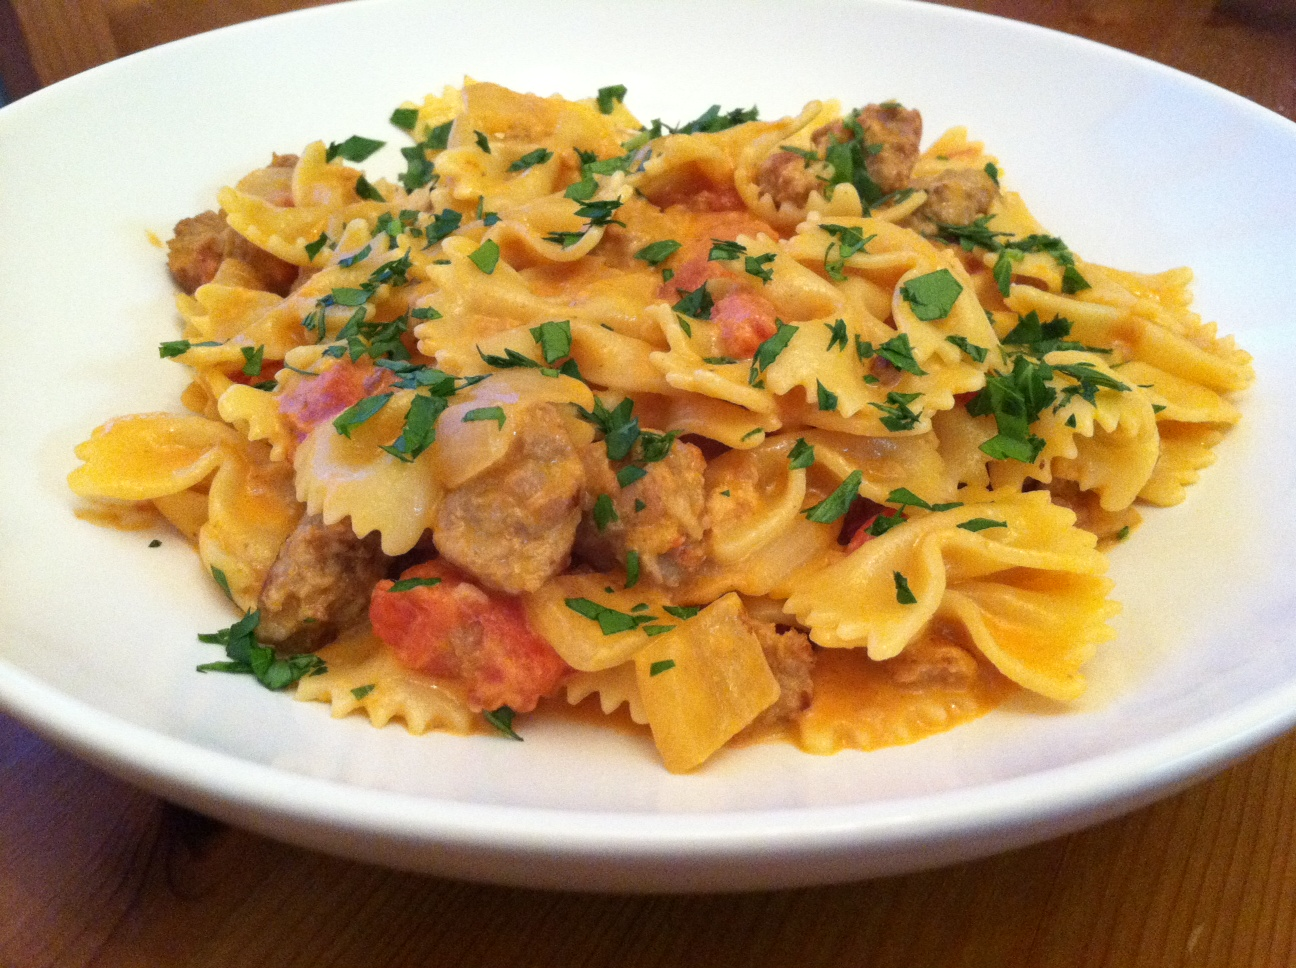 Taste of Home Cooking: Bow Ties with Sausage, Tomatoes and Cream